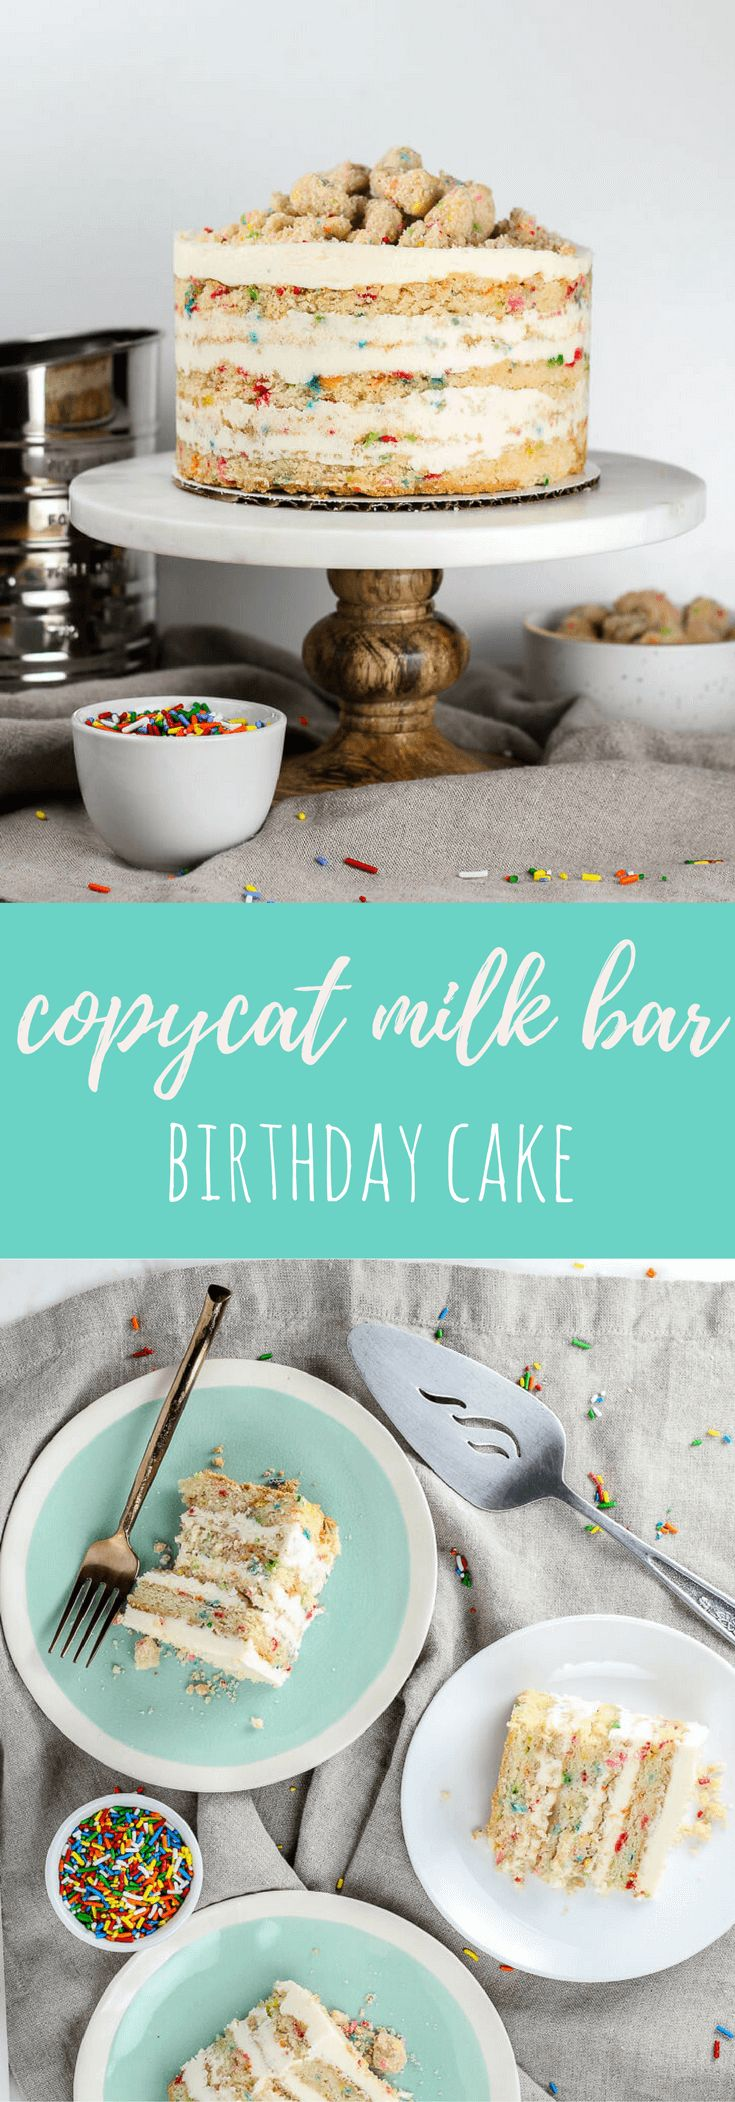 Copycat Milk Bar Birthday Cake Recipe Milk bar